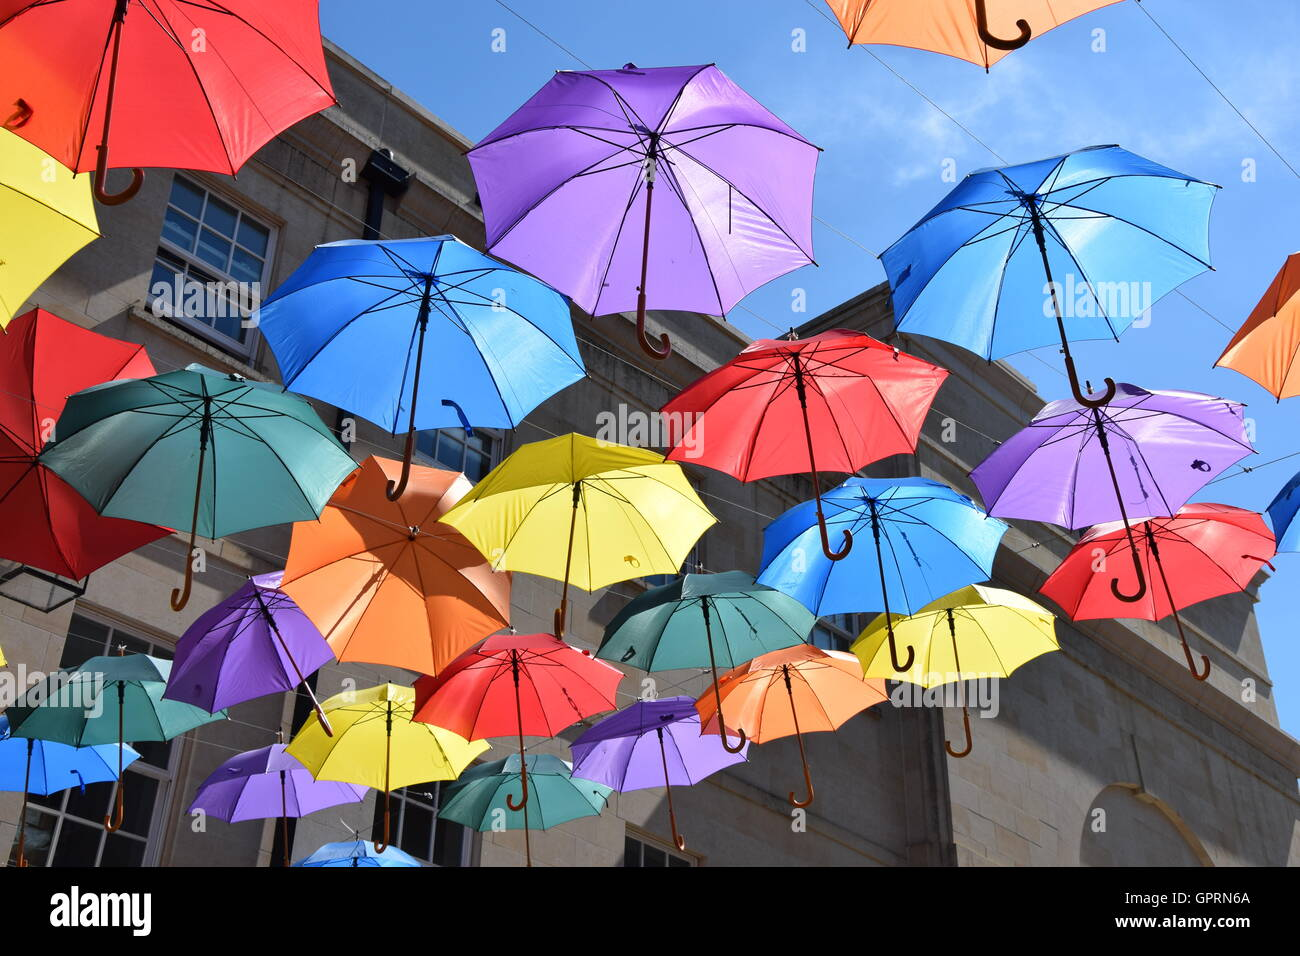 Multi-colored umbrellas against blue sky over a street - Stock Image